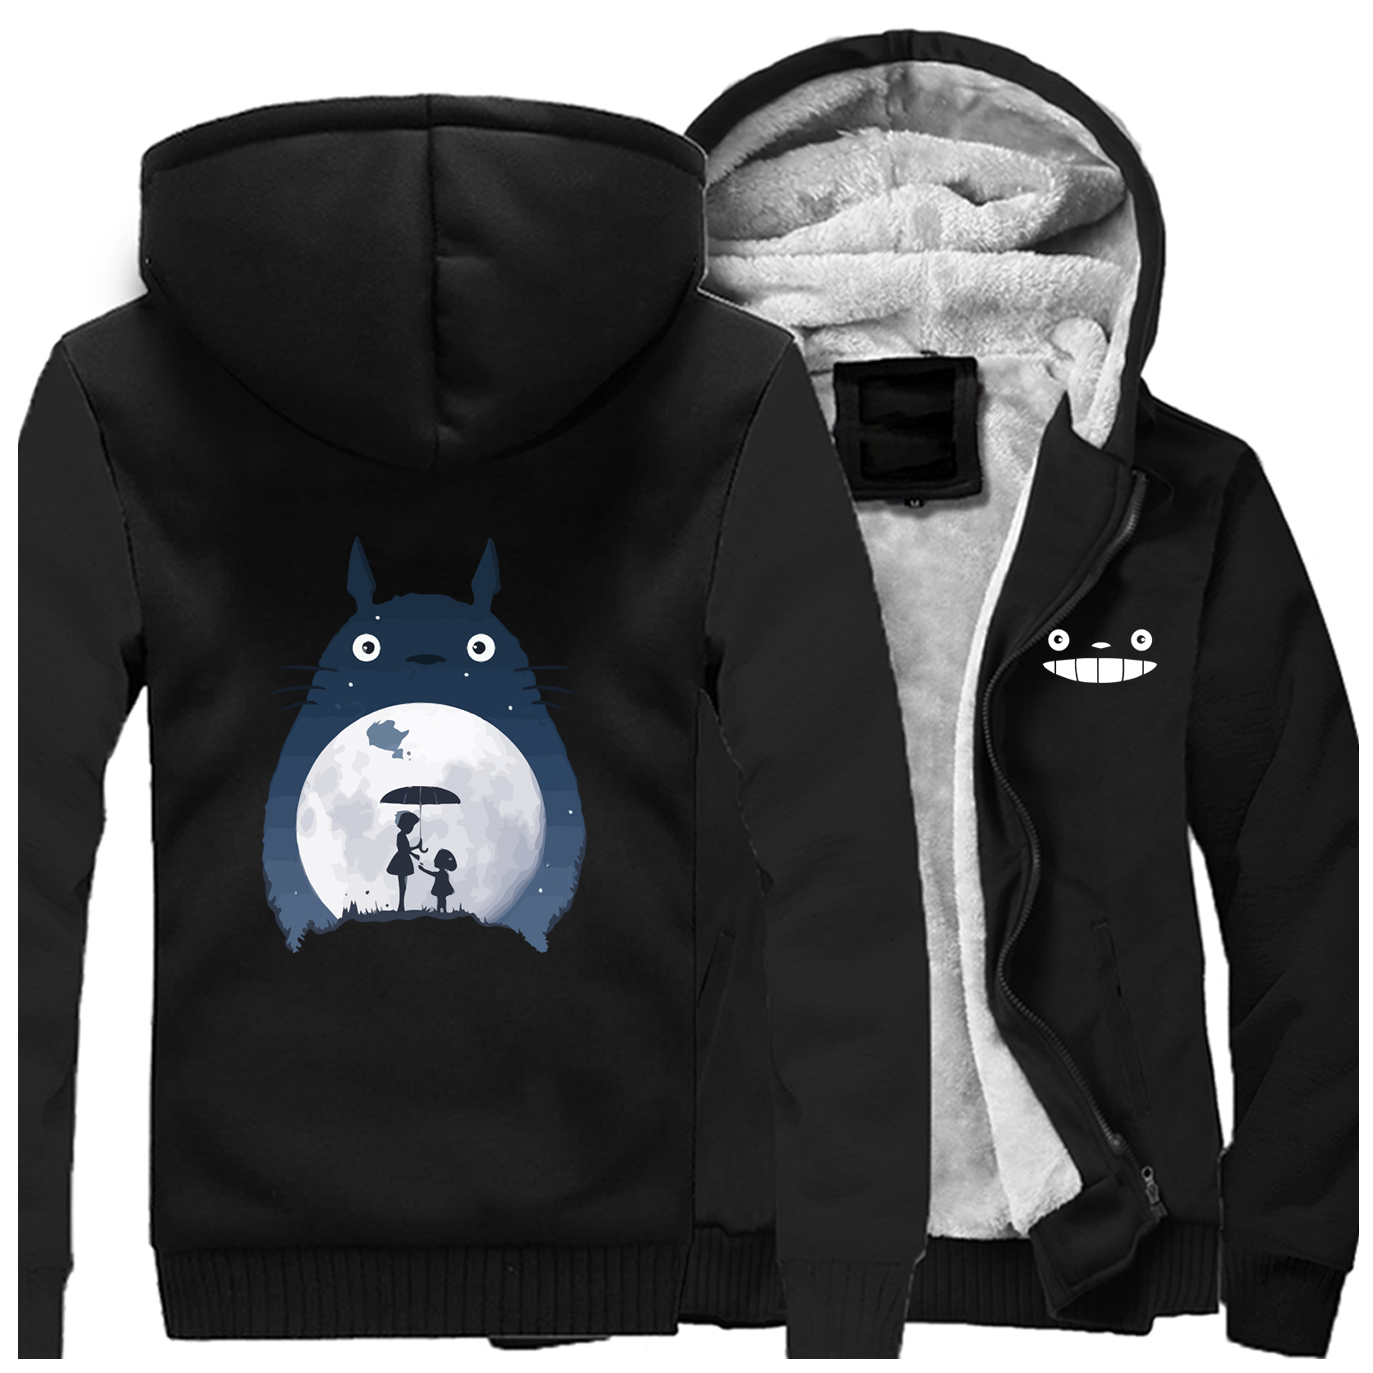 Image 4 - Tonari No Totoro Men Thick Hoodies Sweatshirts Fleece Warm Zipper Coa Vintage Japanese Anime Jacket Streetwear Winter Hoodie-in Hoodies & Sweatshirts from Men's Clothing